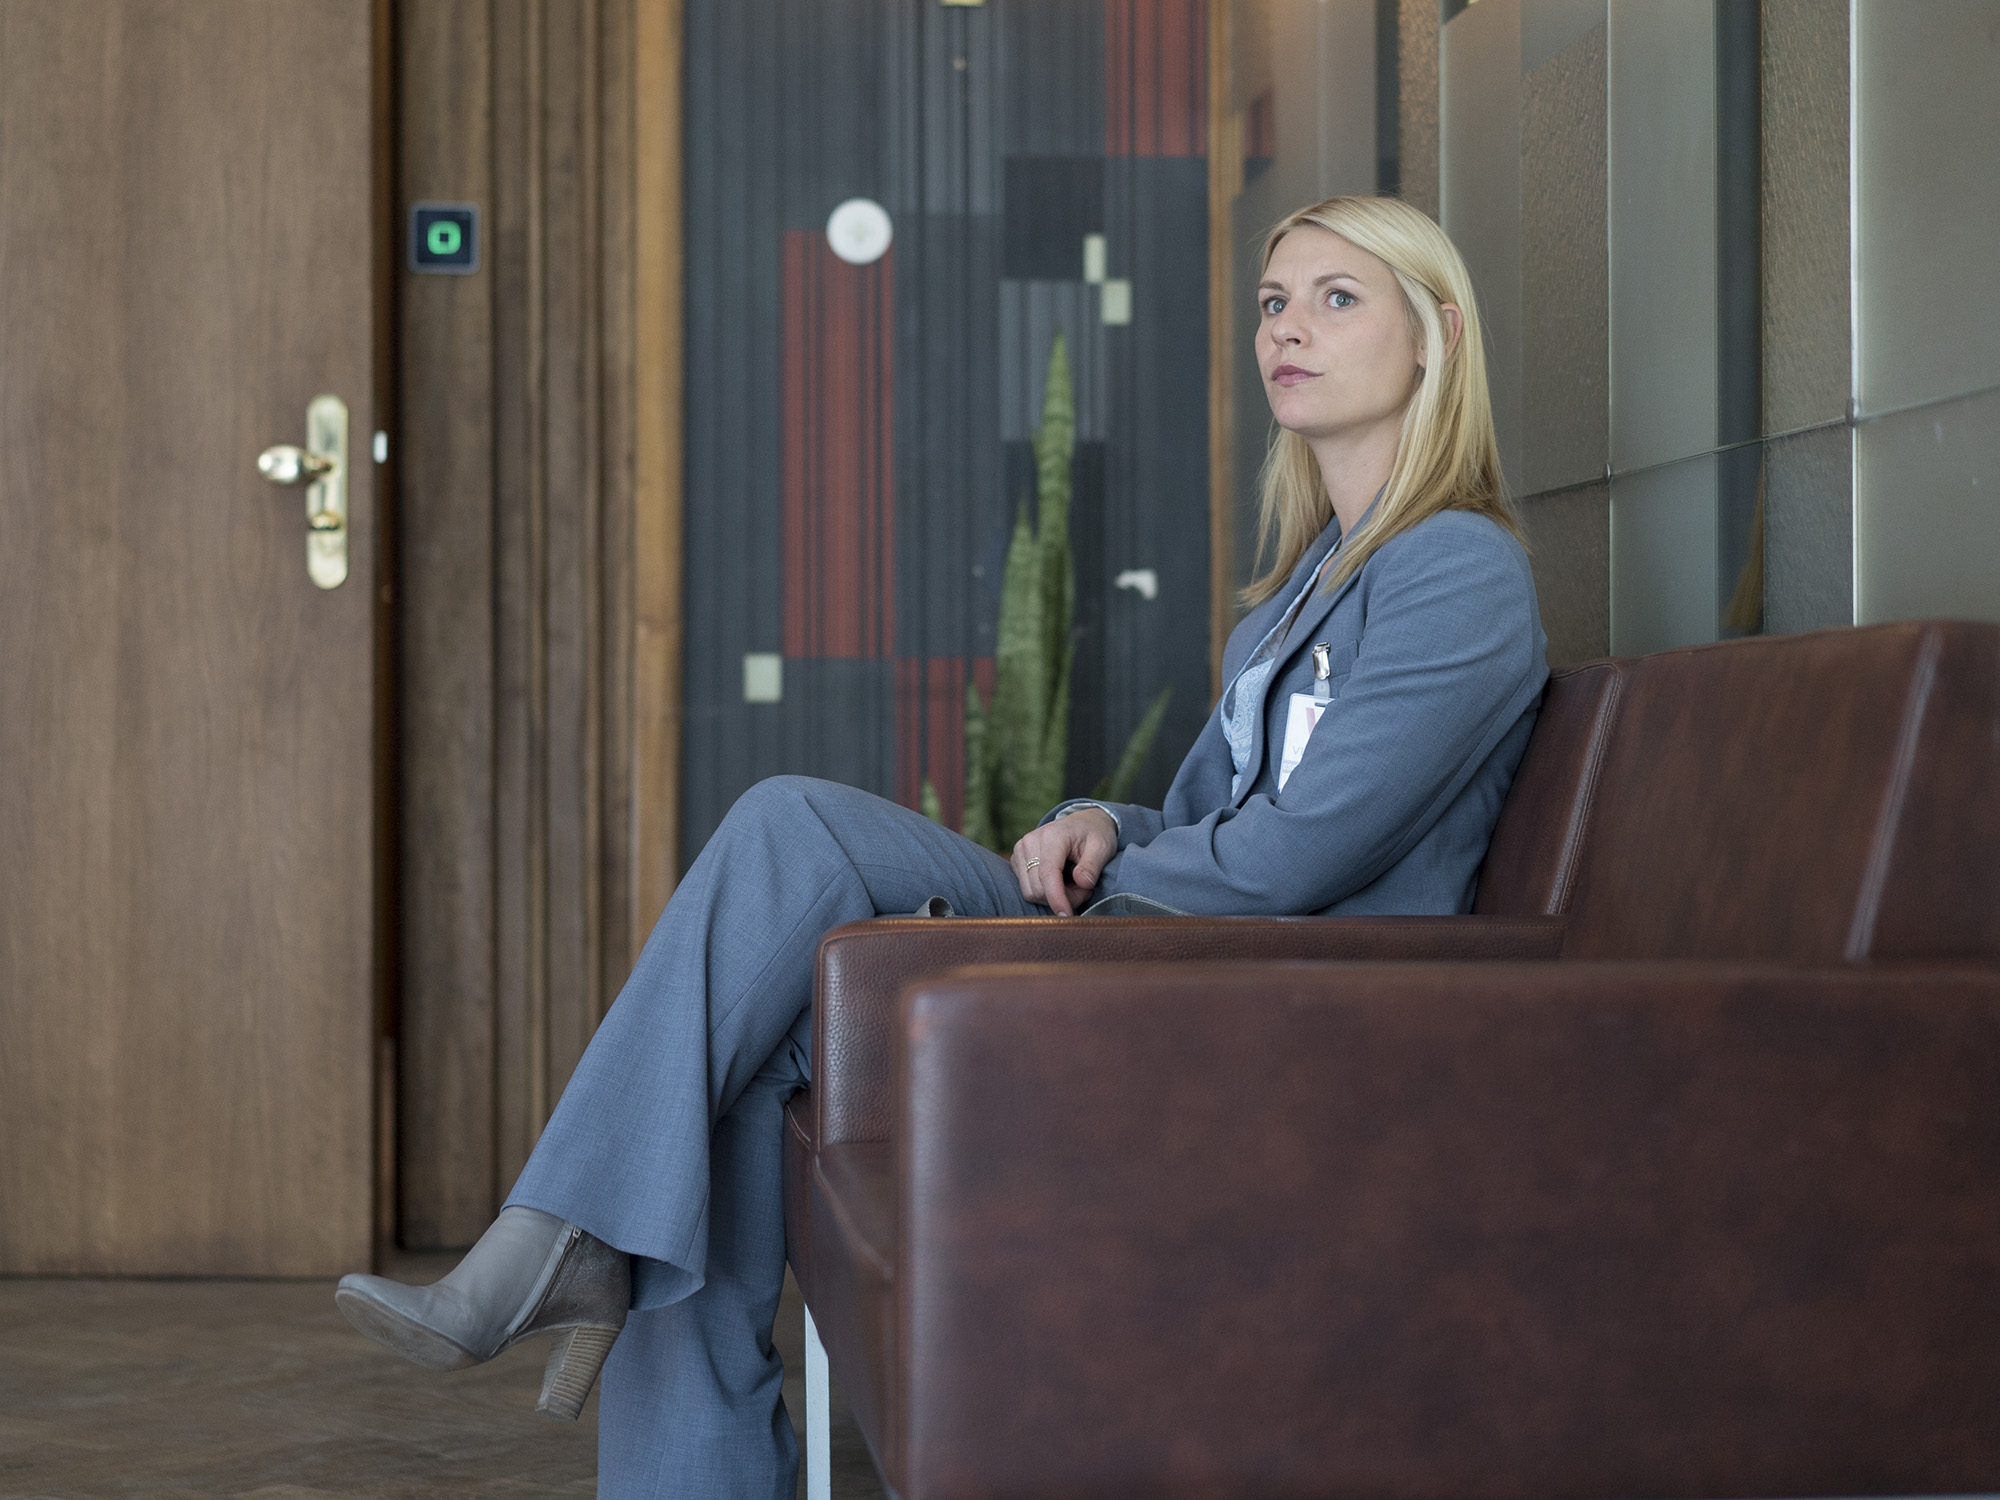 Homeland series 5, episode 1: Separation Anxiety – Just when Carrie thought she was out